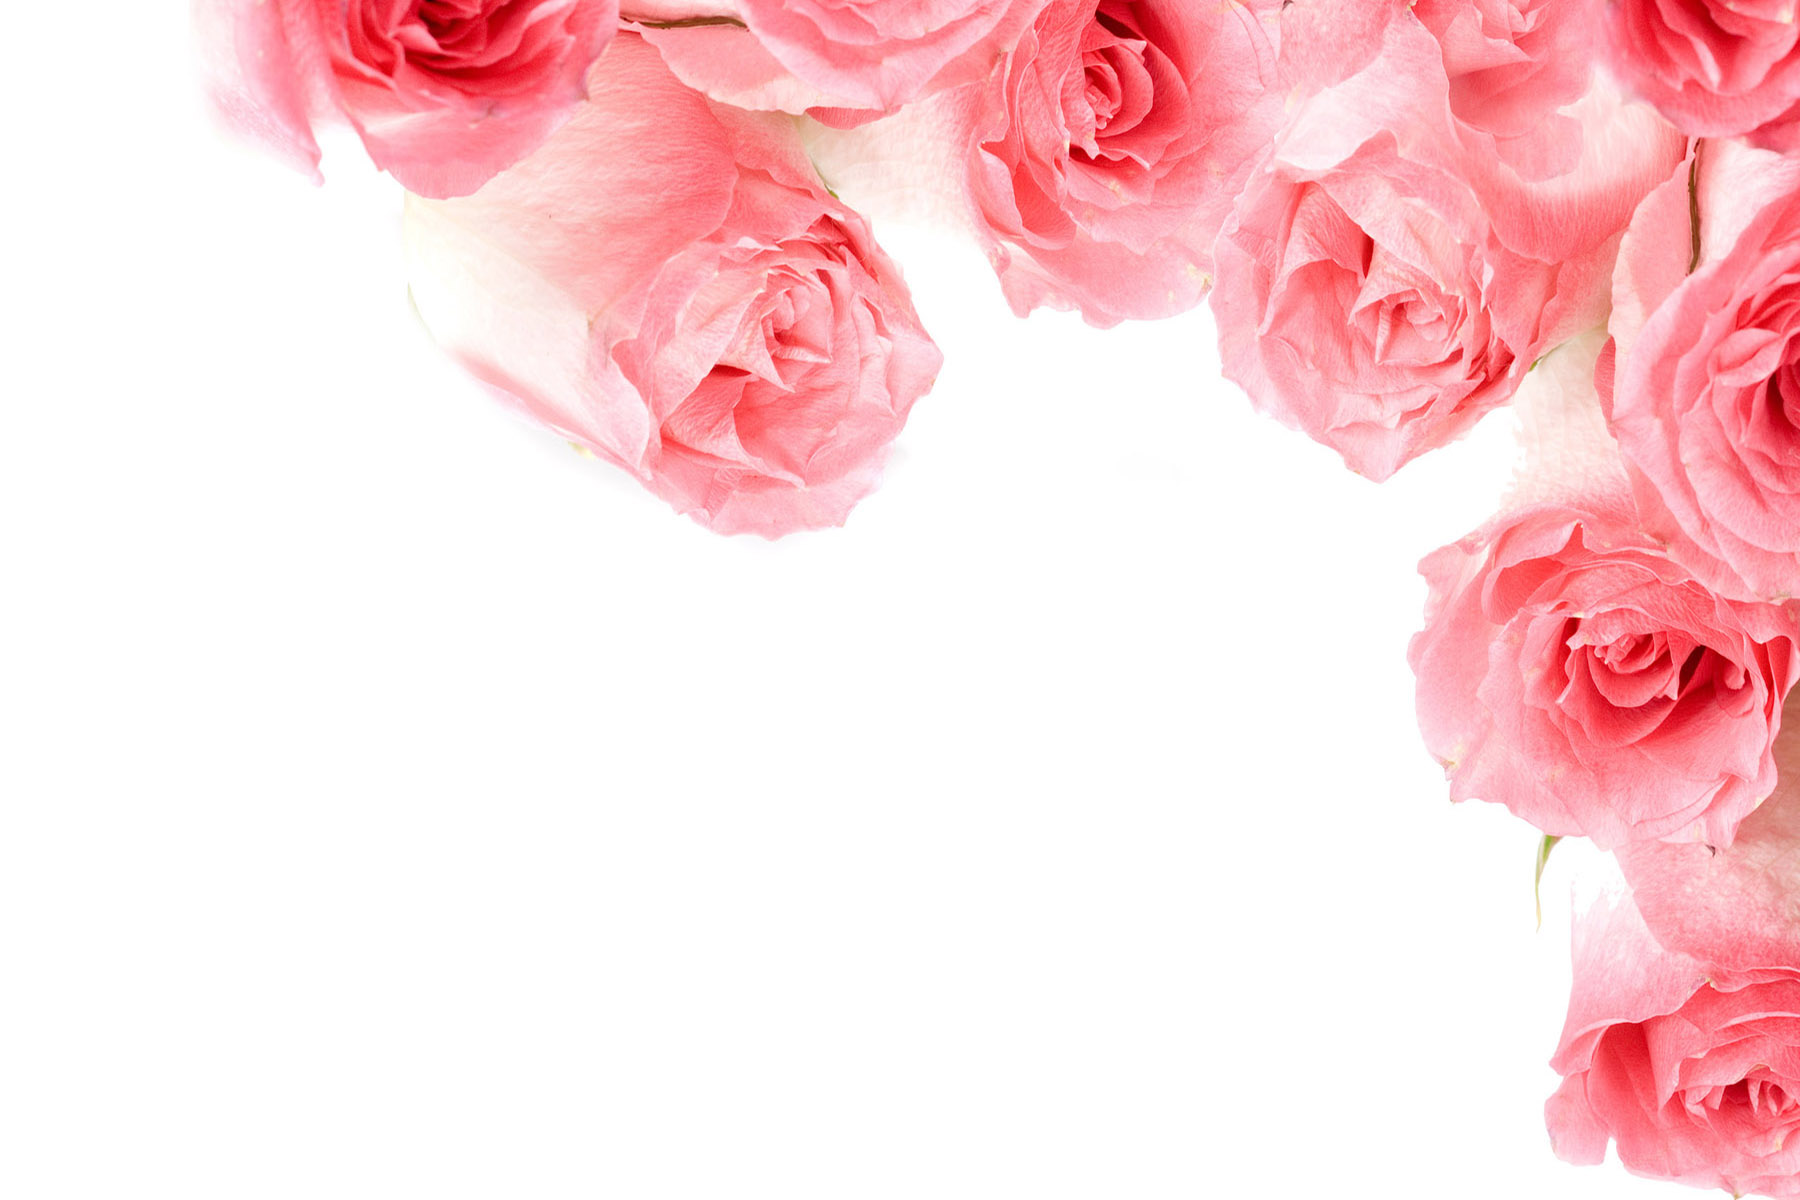 Pink rose flowers images 18 widescreen wallpaper hdflowerwallpaper pink rose flowers images 18 widescreen wallpaper mightylinksfo Choice Image